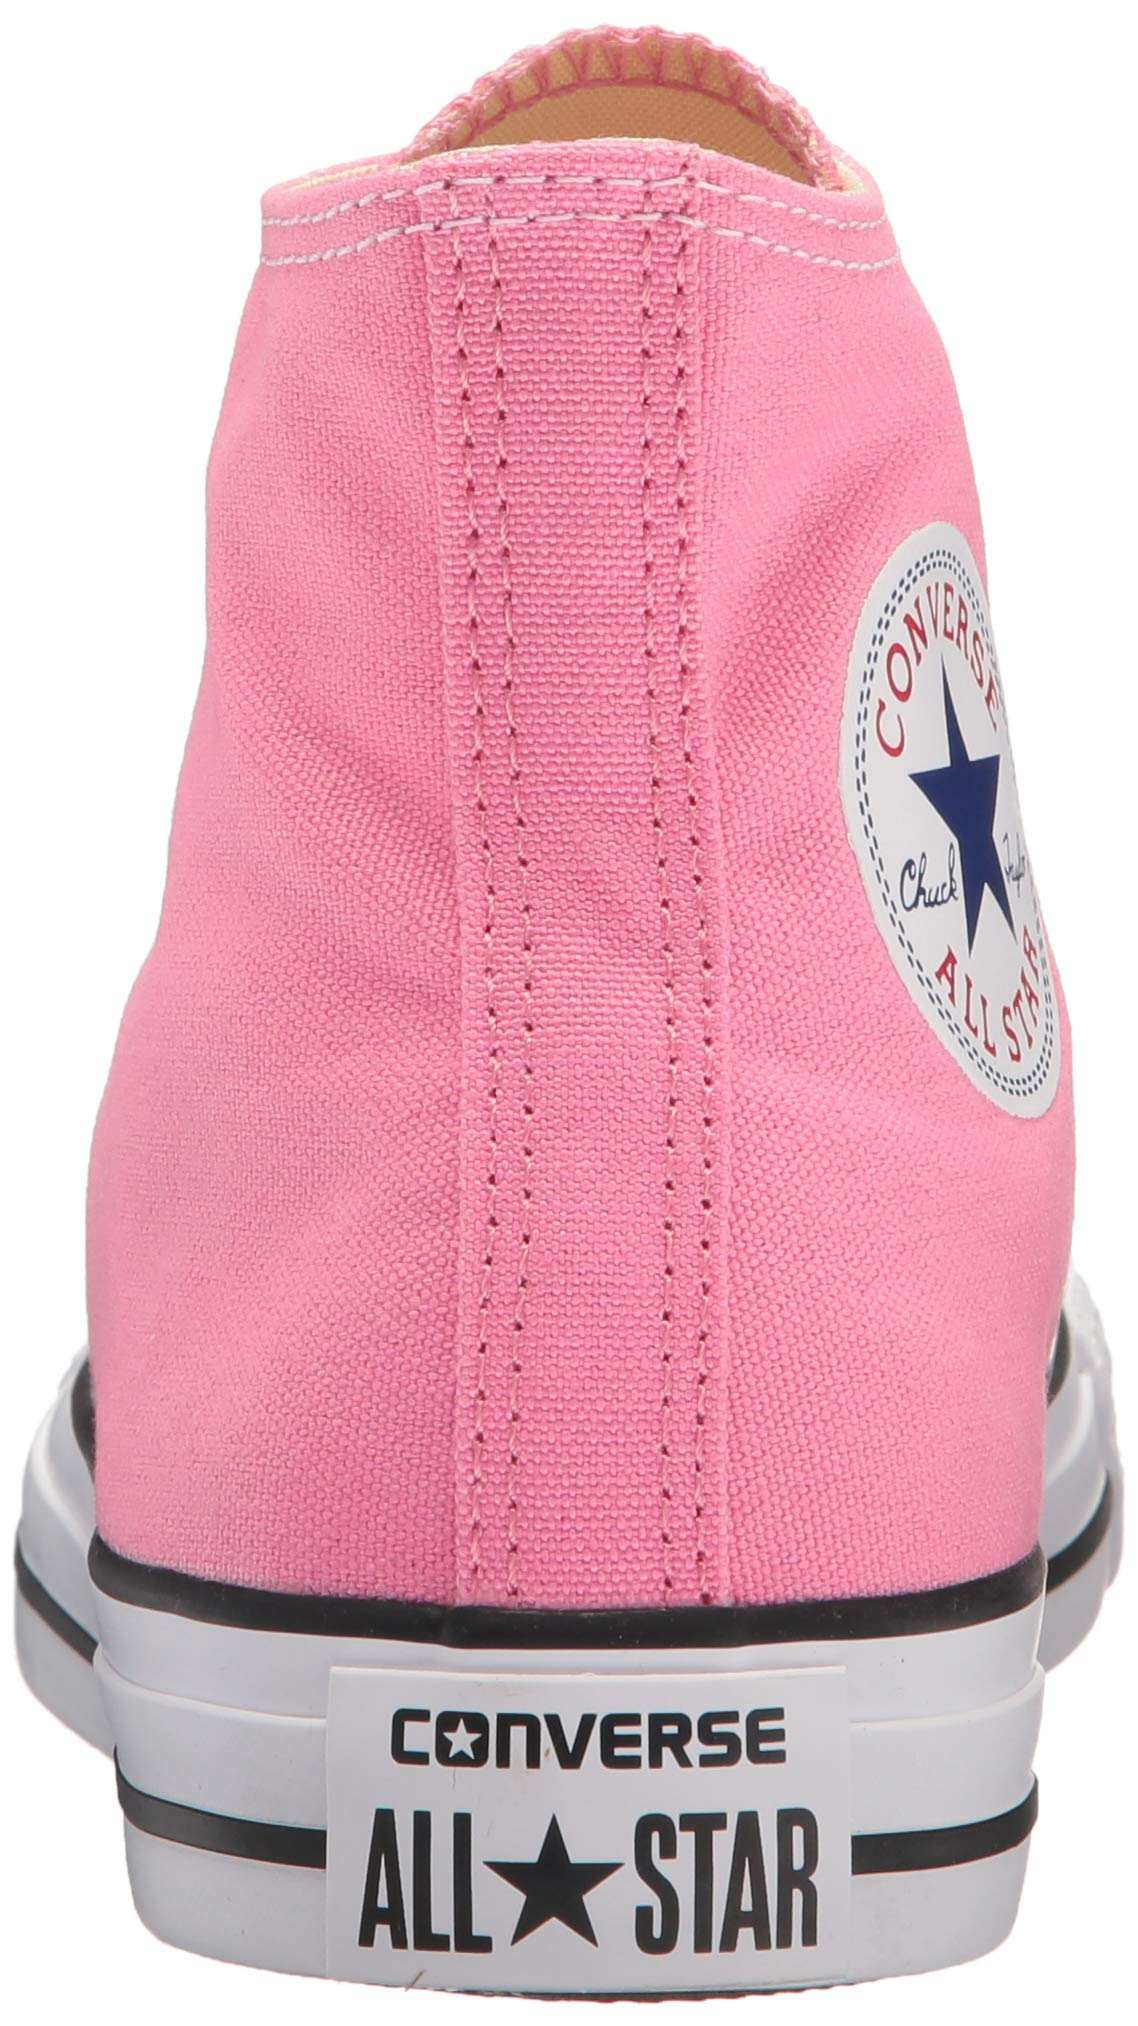 Chuck Taylor All Star Canvas High Top, Pink, 4 M US by Converse (Image #2)